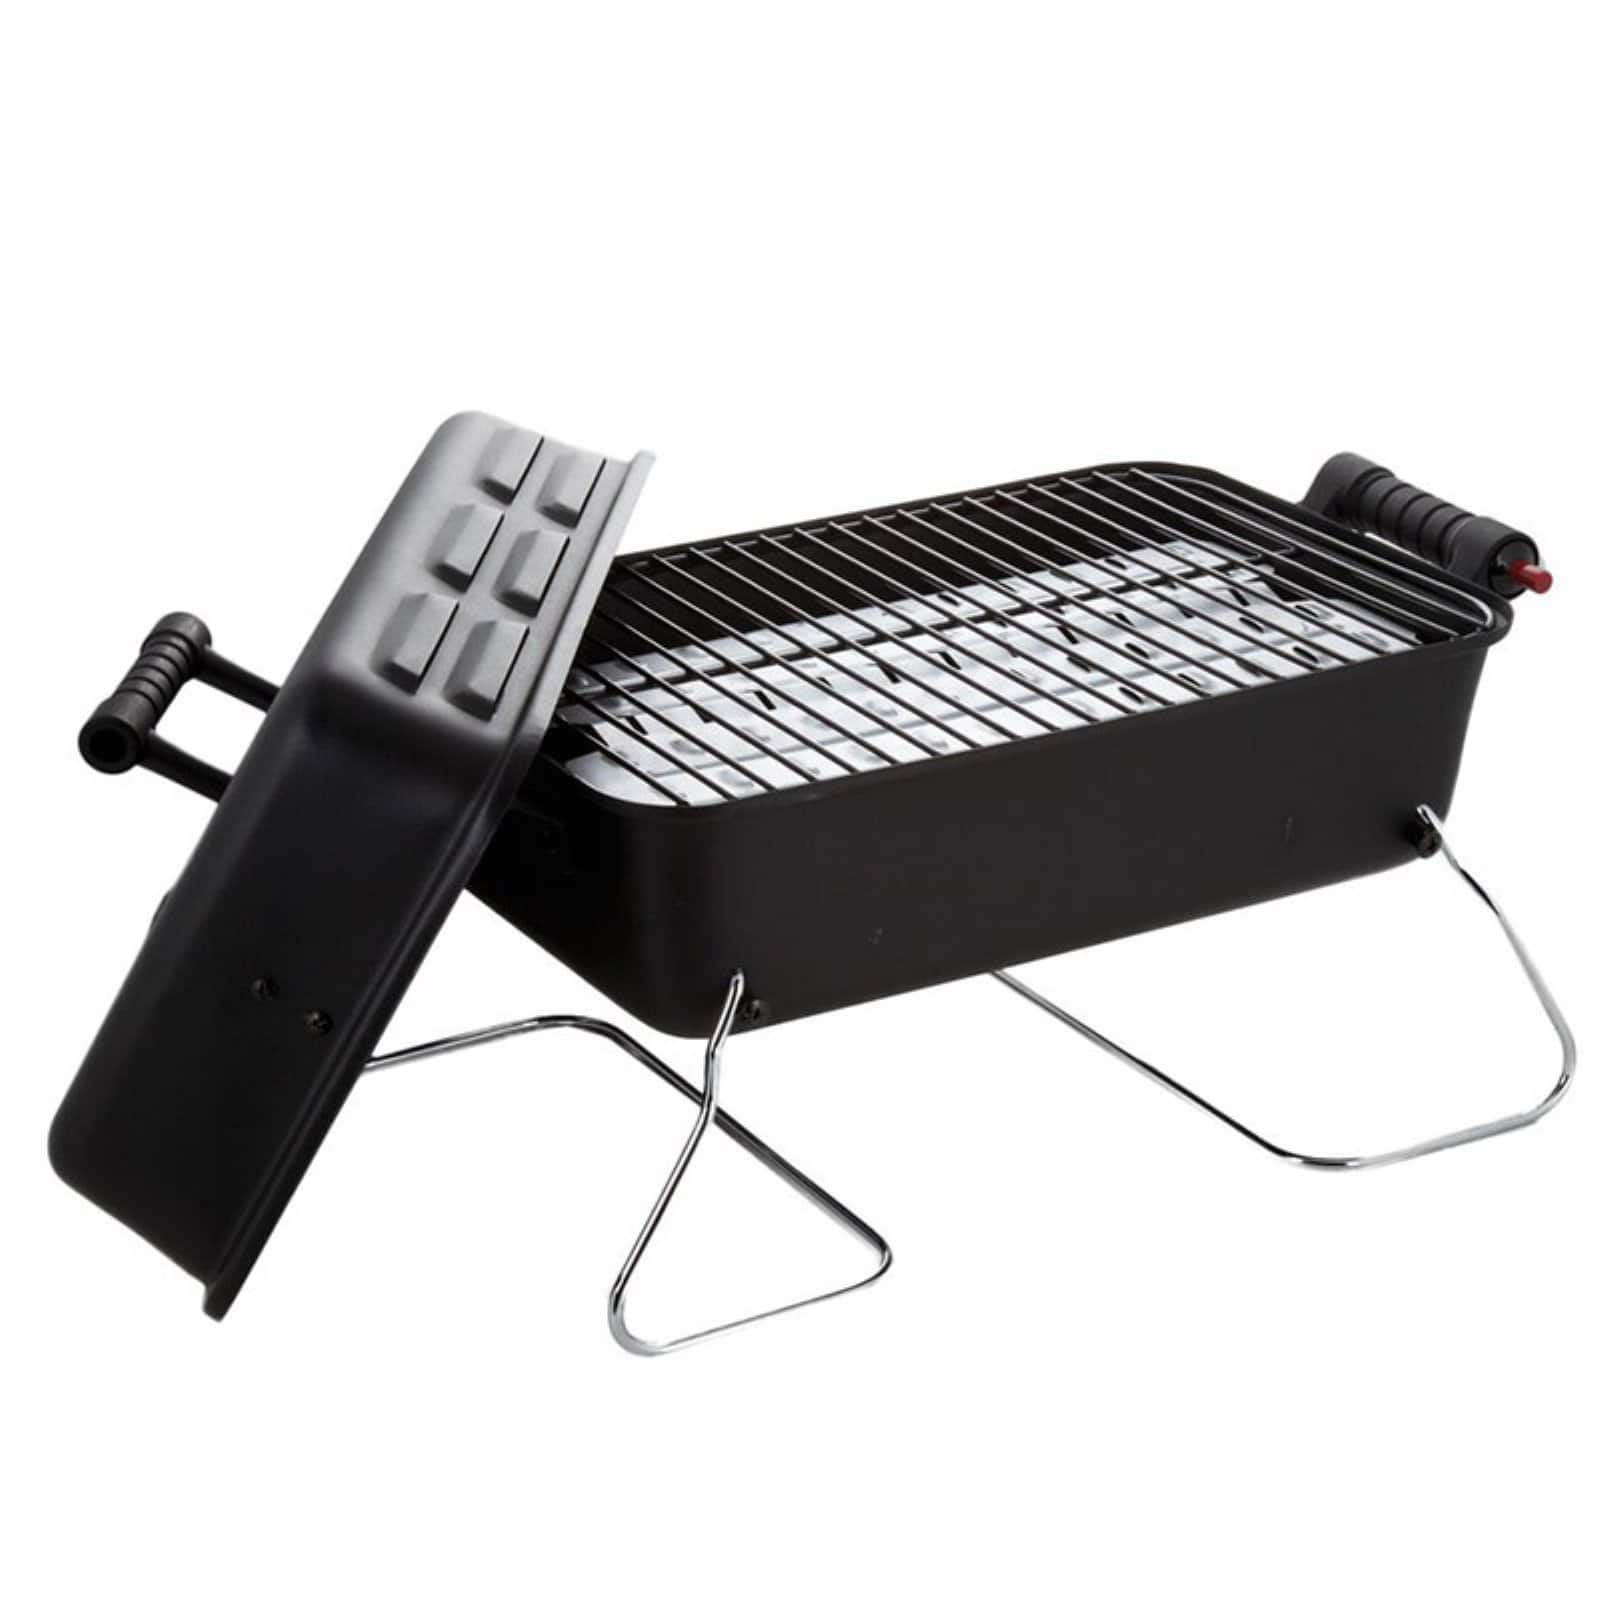 Char Broil Portable Propane Gas Grill Slickdeals